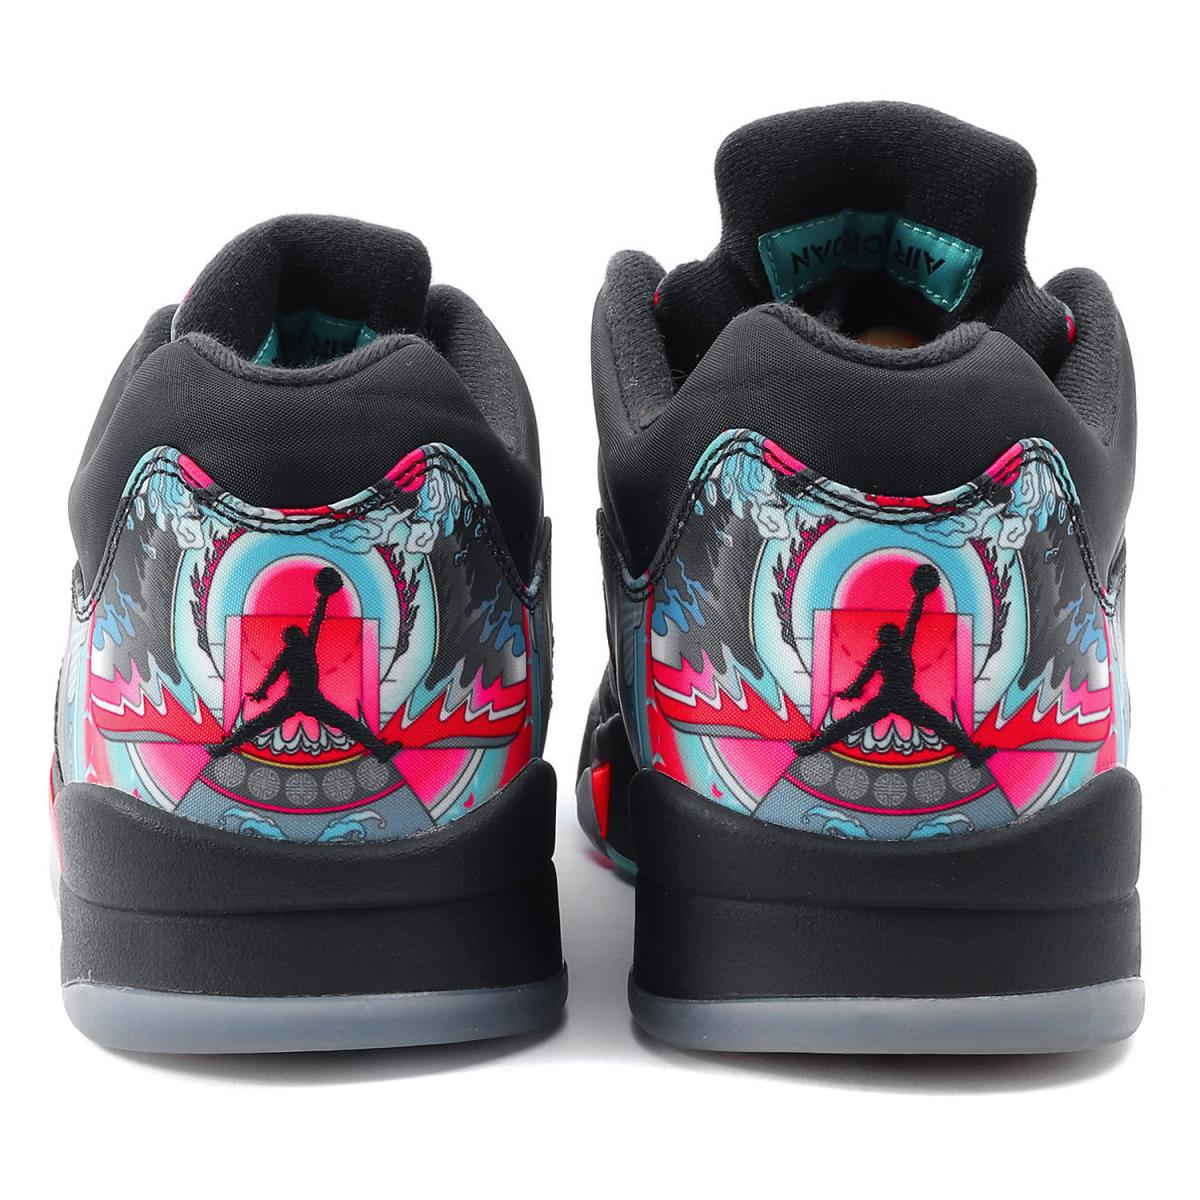 99a9aad3e740 BEEGLE by Boo-Bee  NIKE (Nike) AIR JORDAN 5 RETRO LOW CNY CHINESE ...